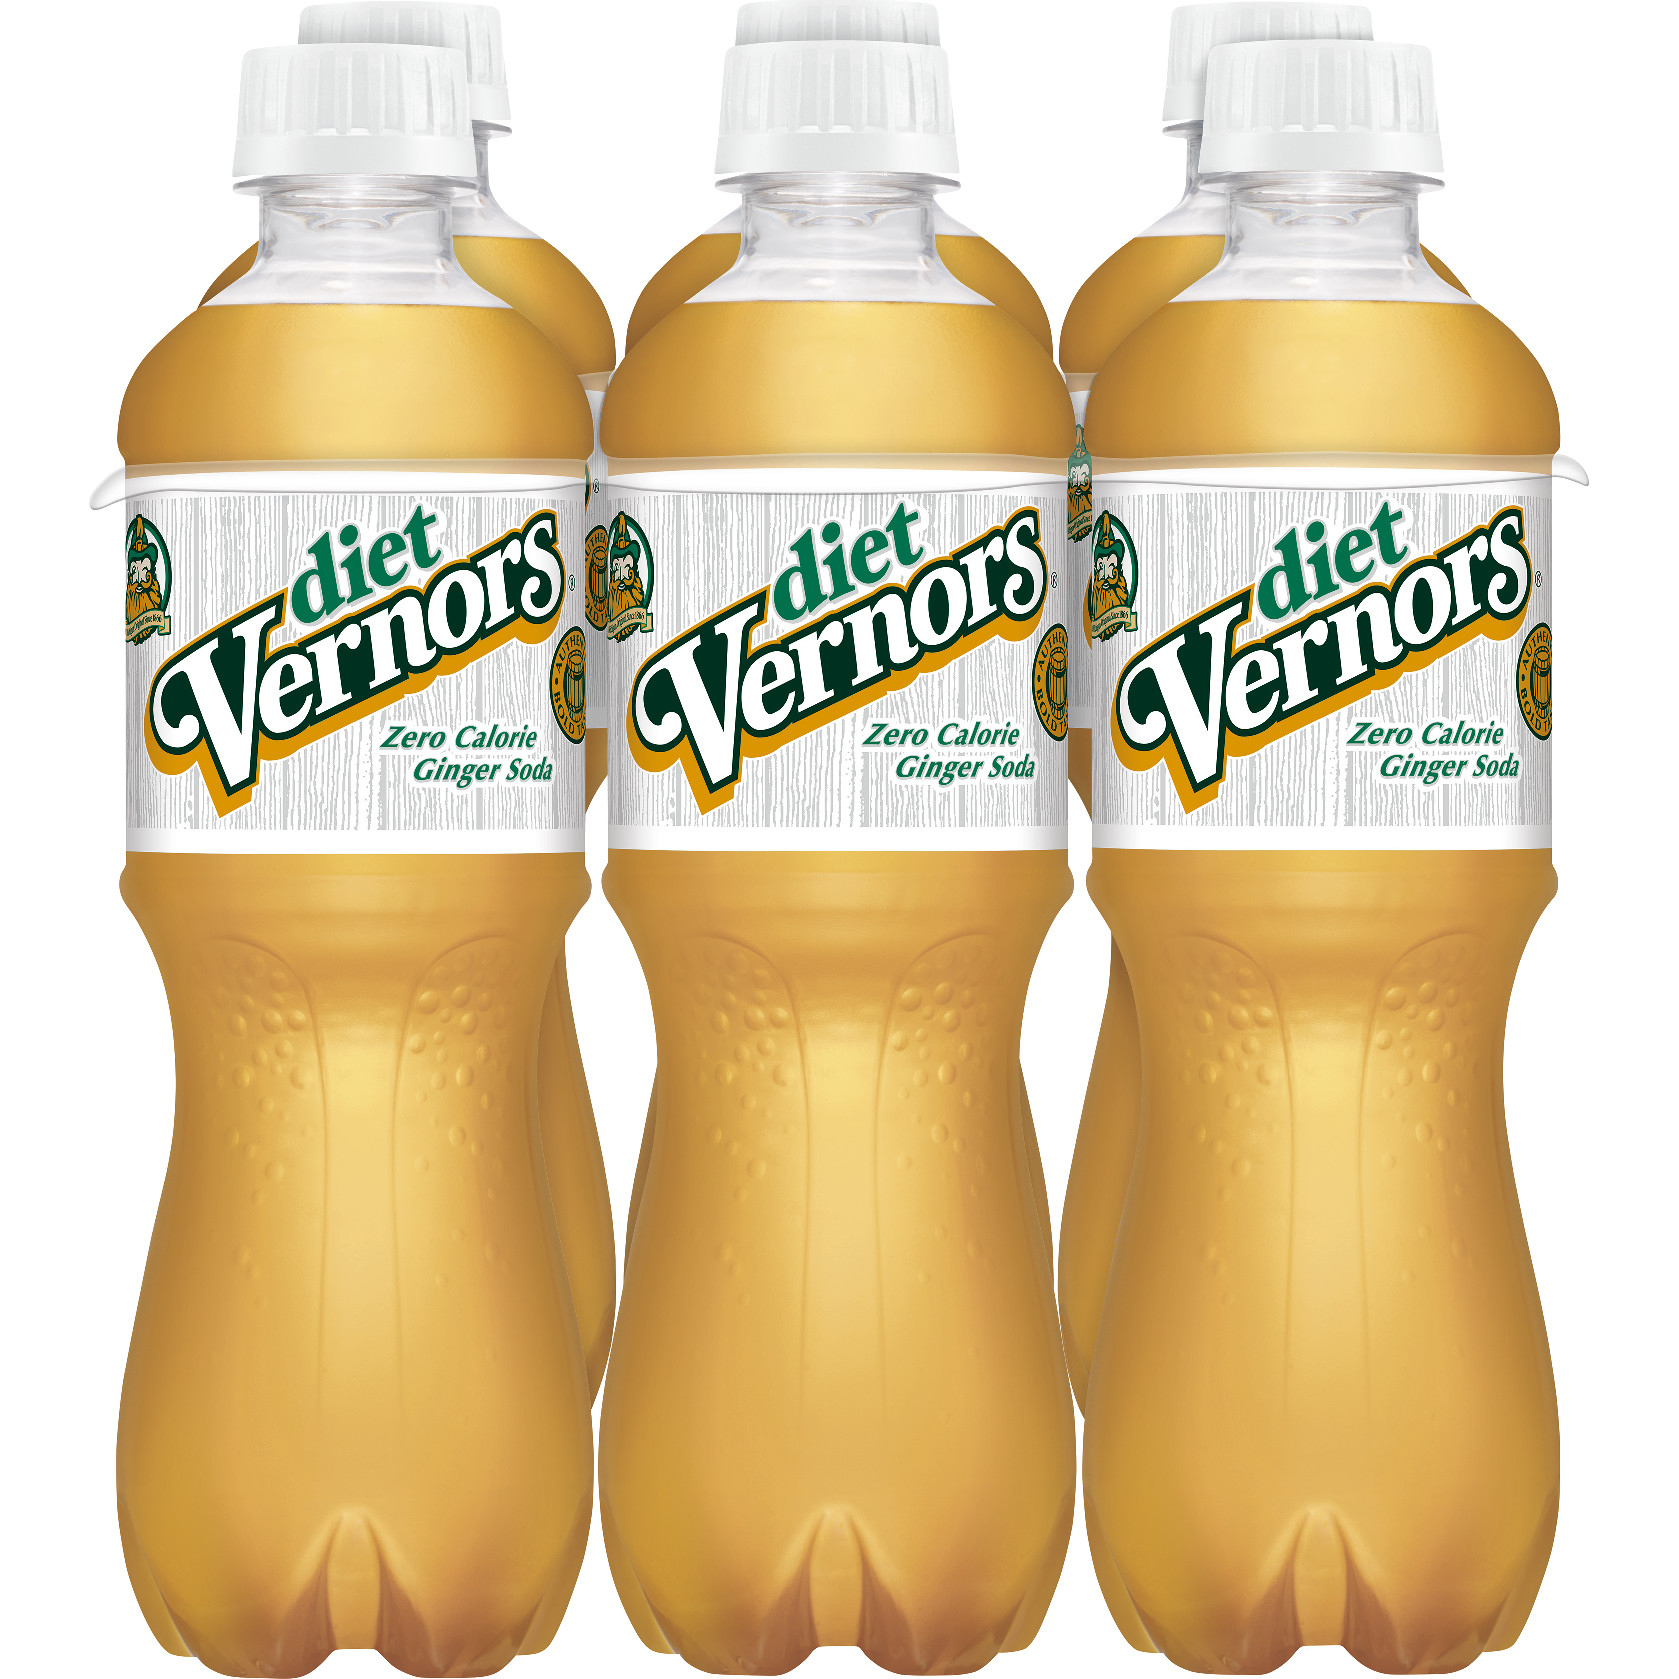 Diet Vernors Ginger Soda, 0.5 L, 6 pack